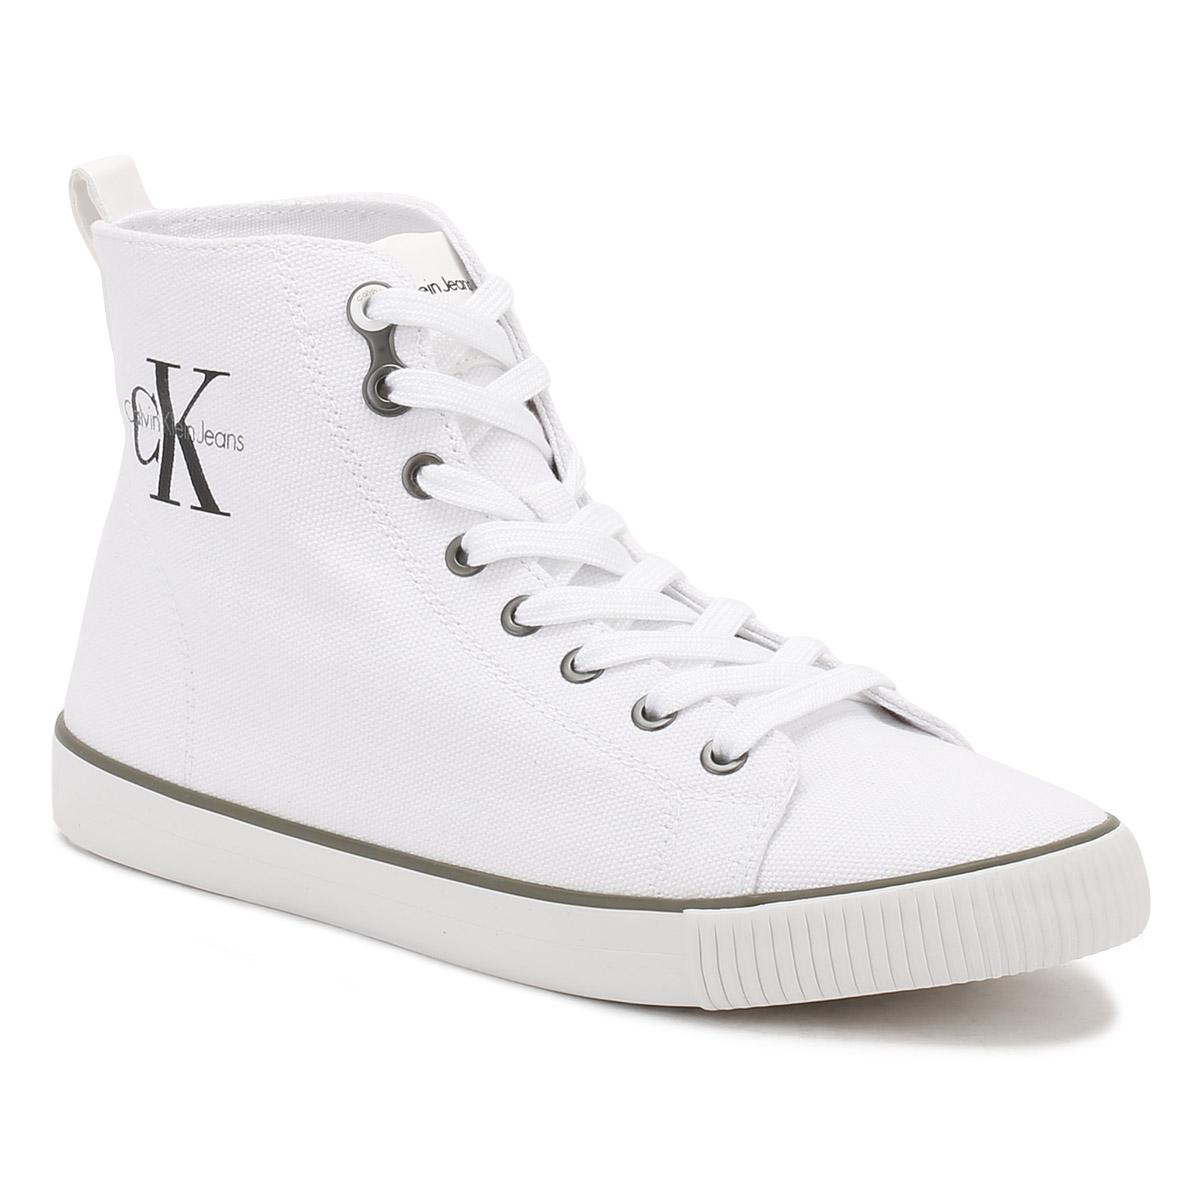 0bbceadb85 Lyst - Calvin Klein Womens White Dolores Canvas Trainers in White